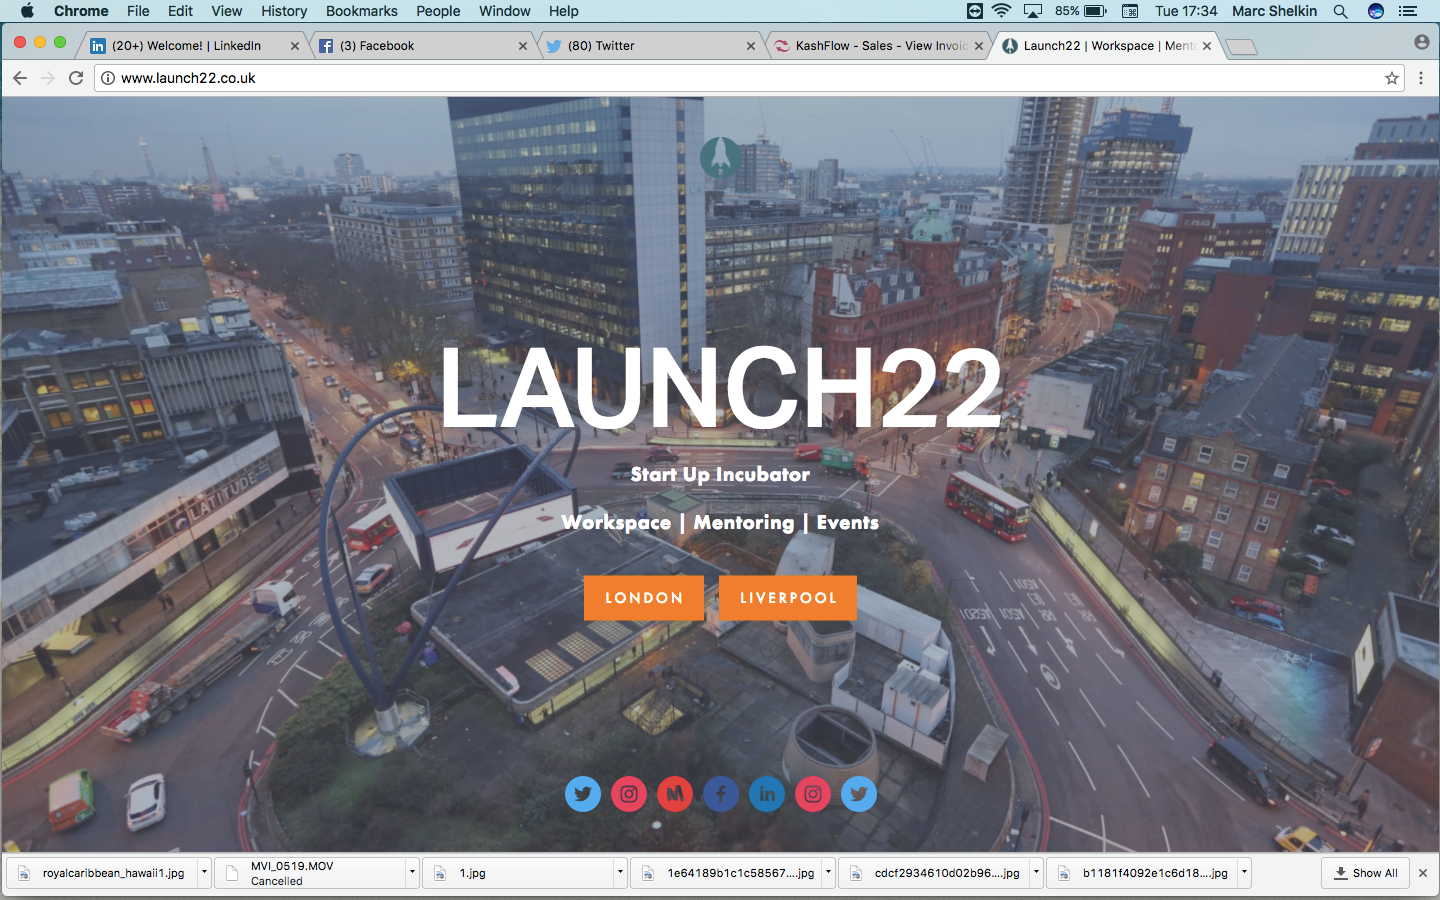 Workspace launch 22